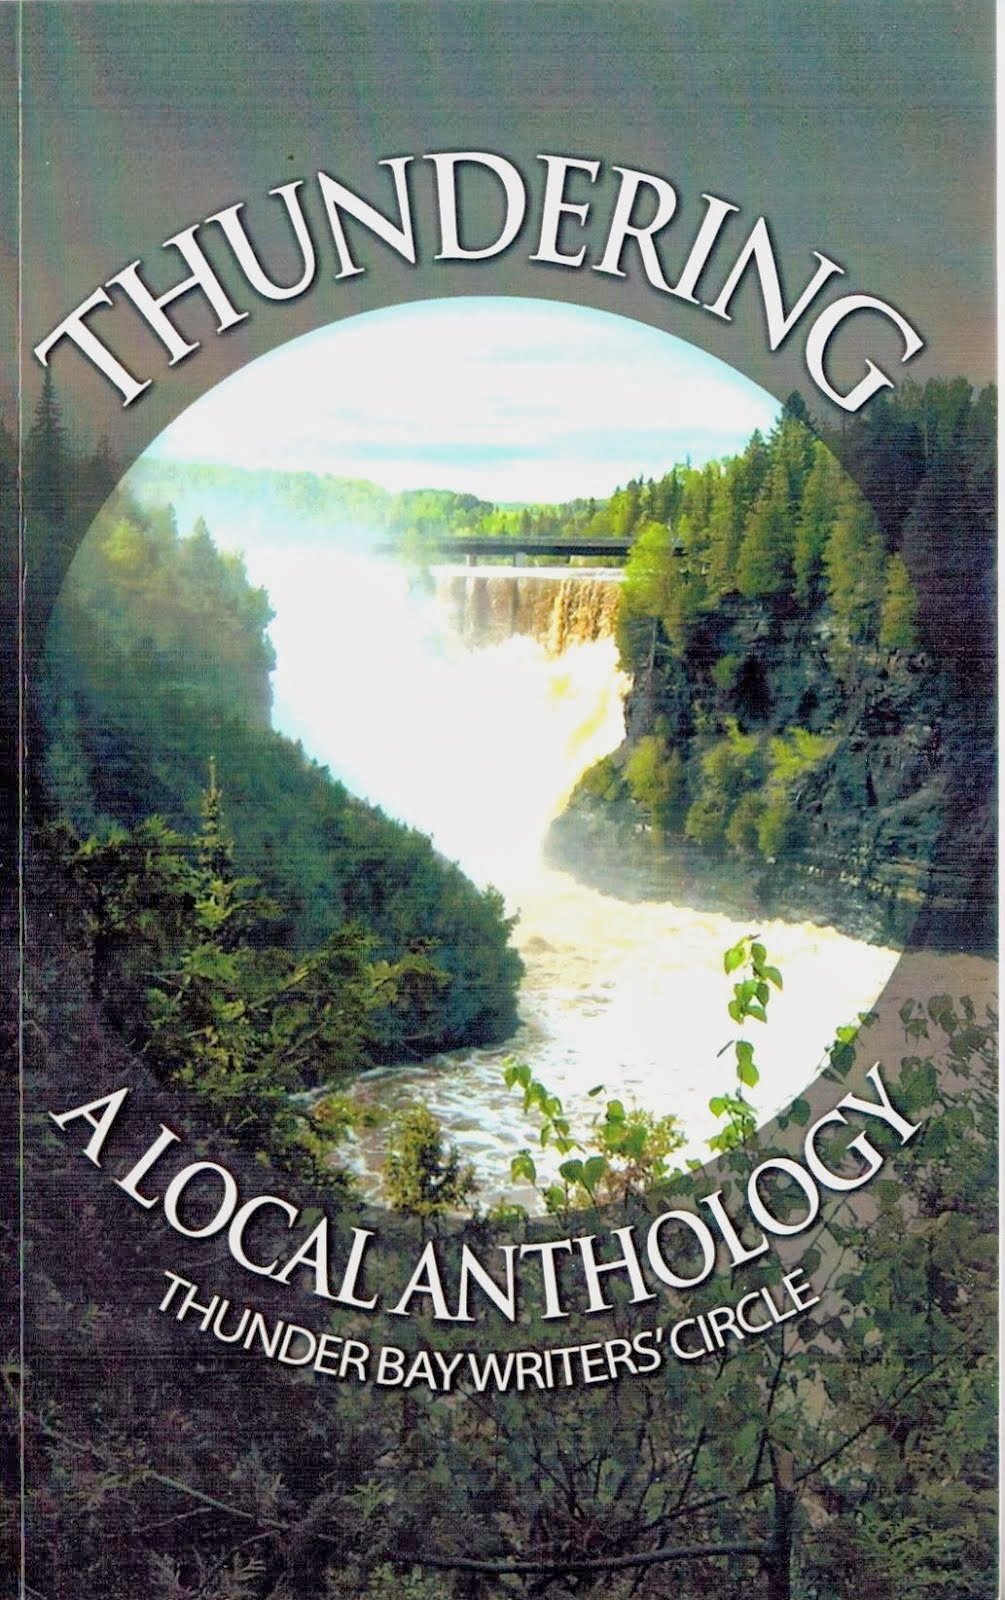 Thundering: A Local Anthology – Thunder Bay Writers' Circle